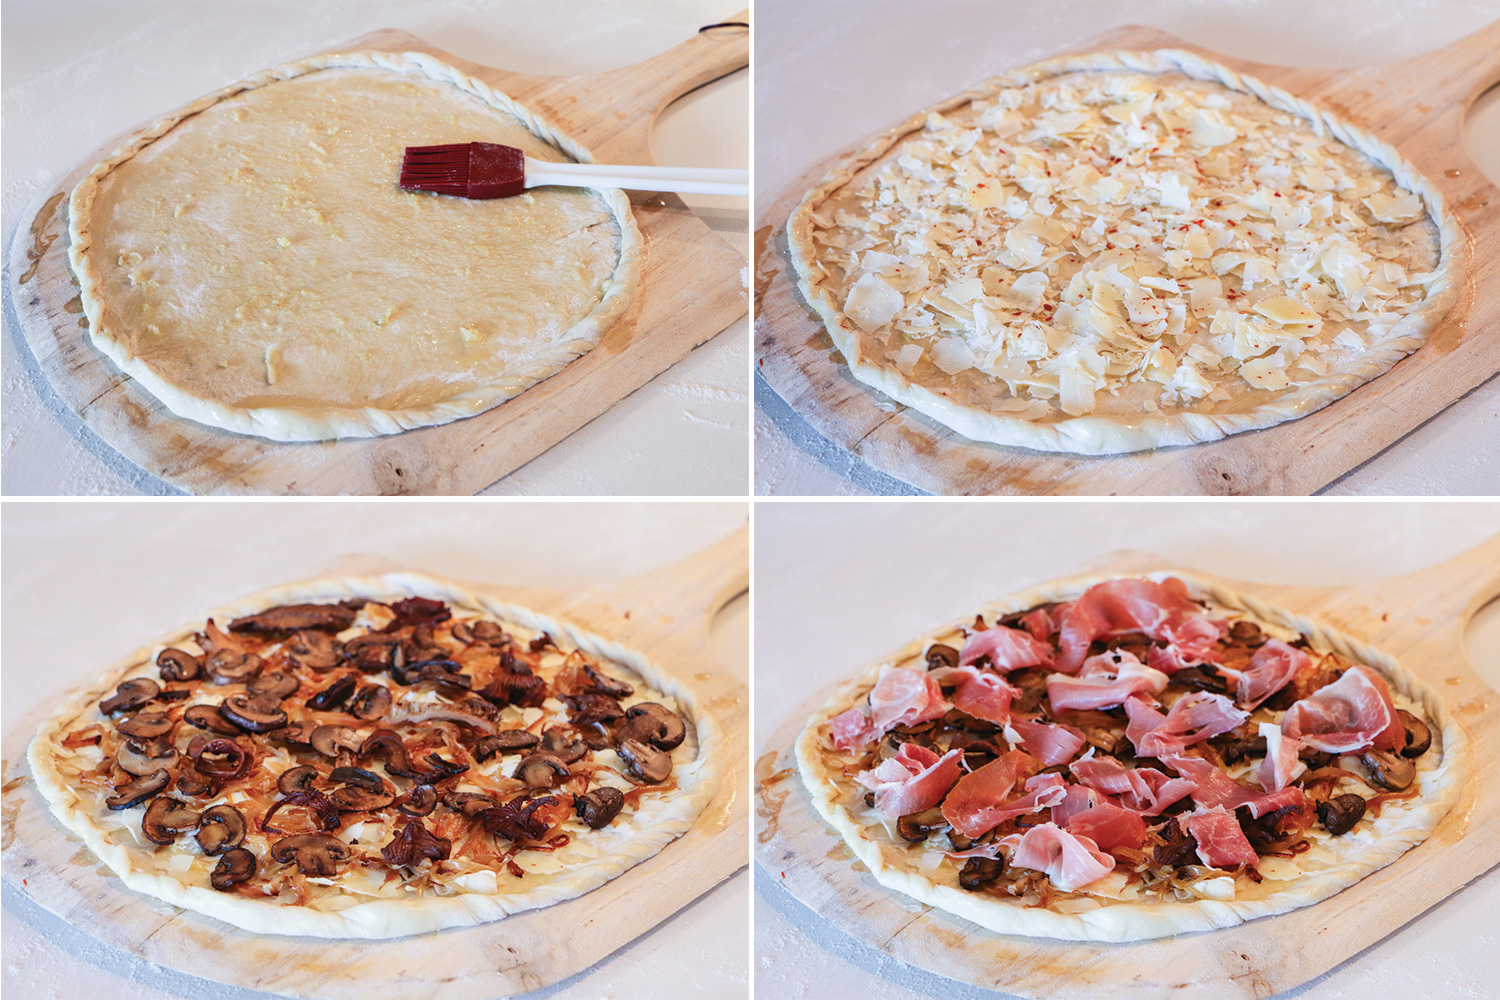 Steps to build your breakfast pizza